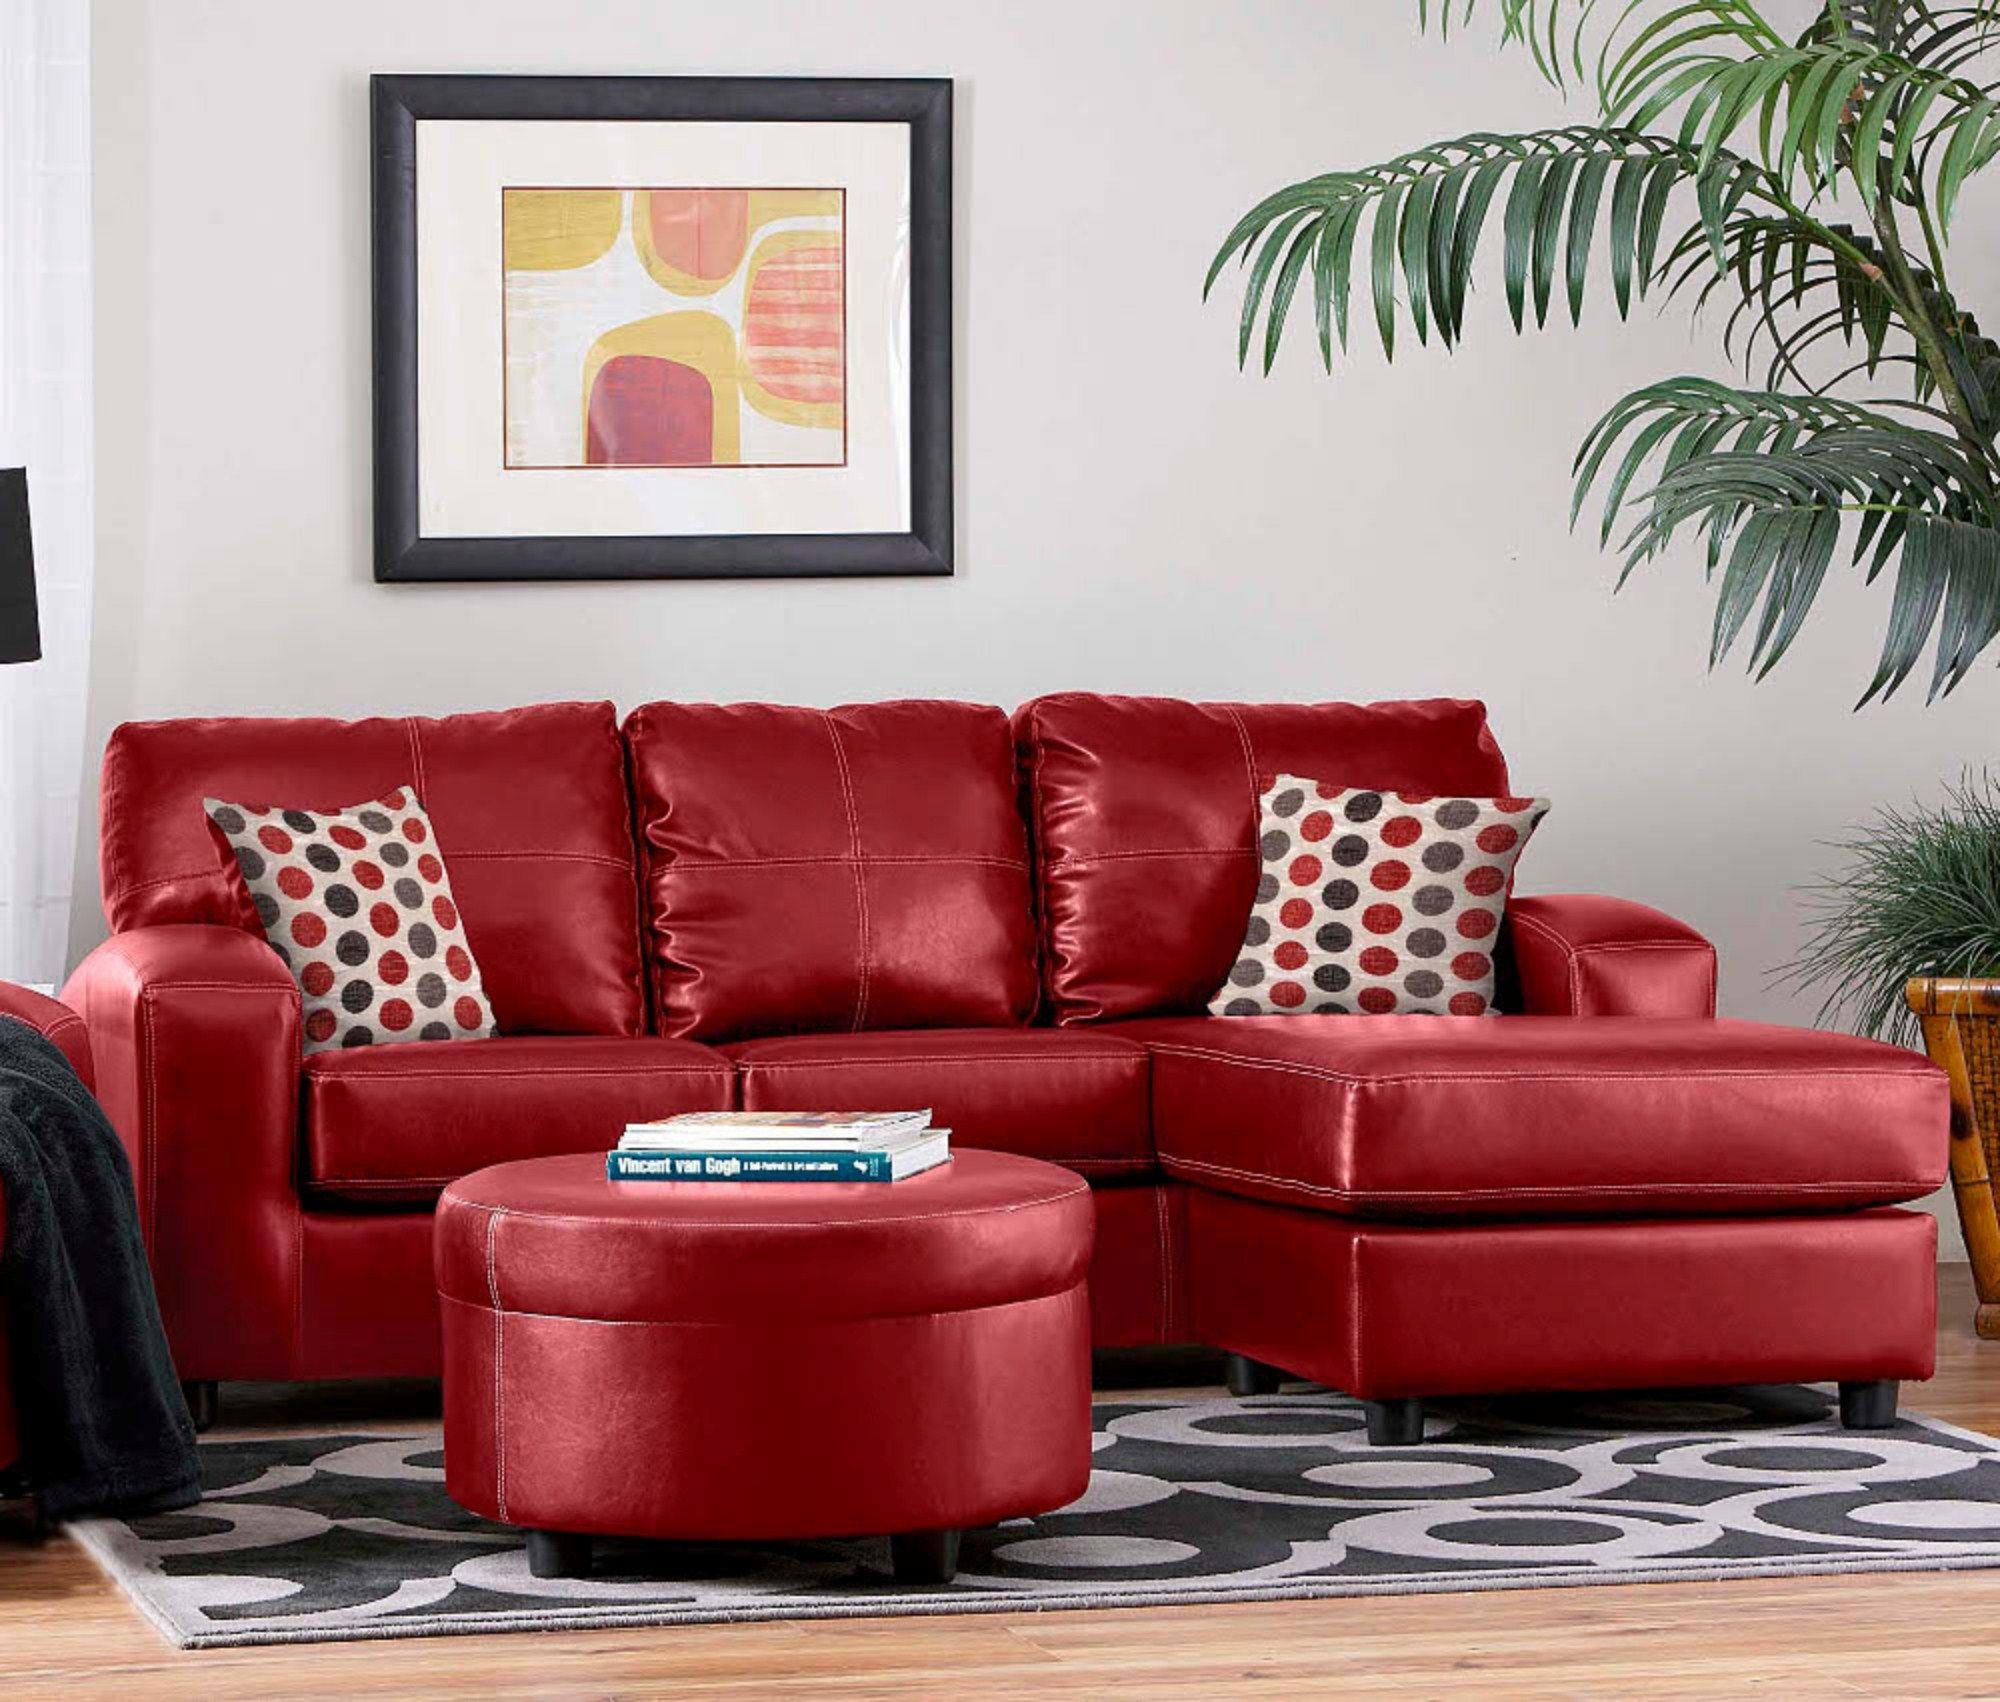 Small Red Leather Sectional Sofa